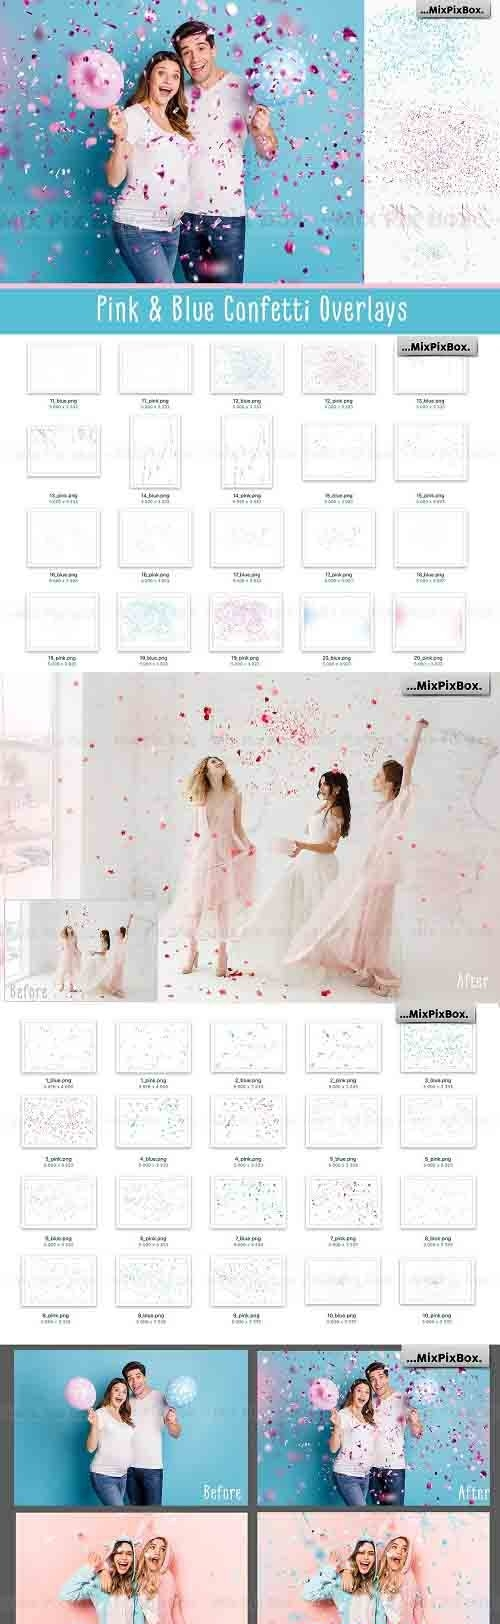 Pink and Blue Confetti Overlays - 6032880